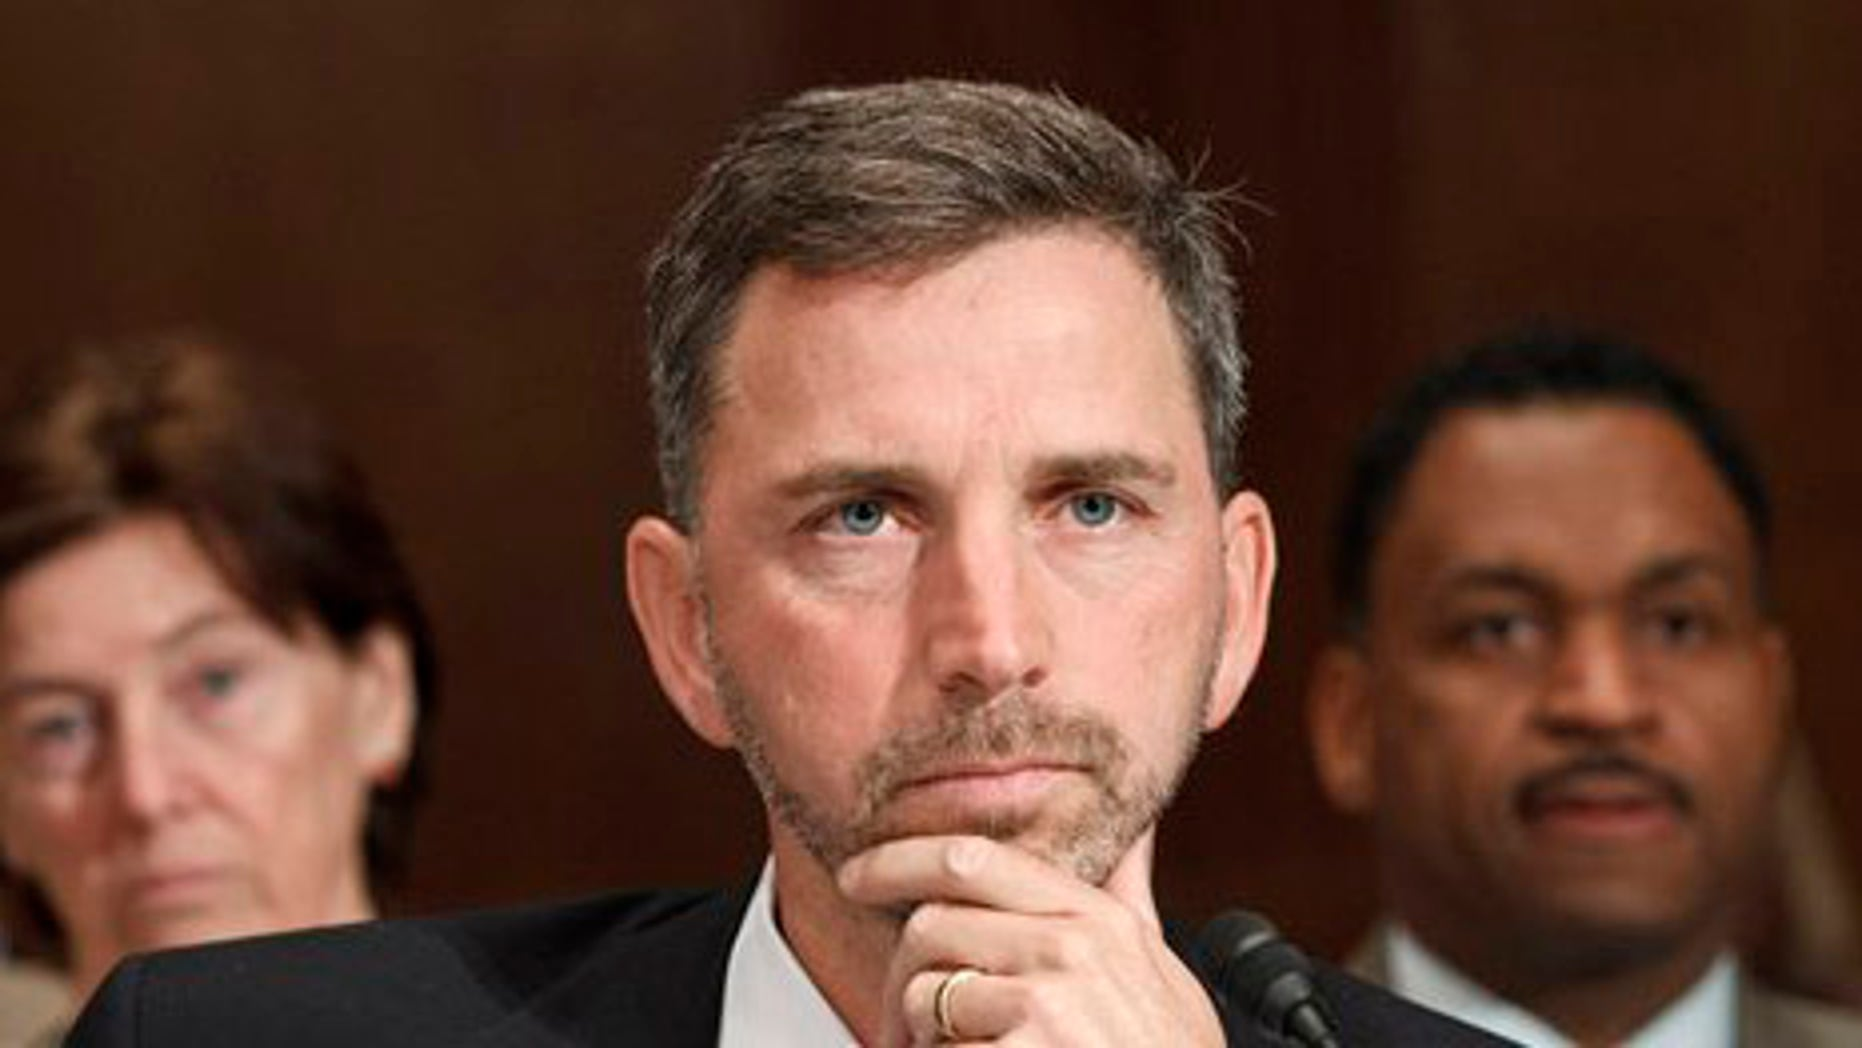 April 18: Acting GSA Administrator Dan Tangherlini, testifies during a Capitol Hill hearing on the alleged misuse of taxpayer money by General Services Administration officials.